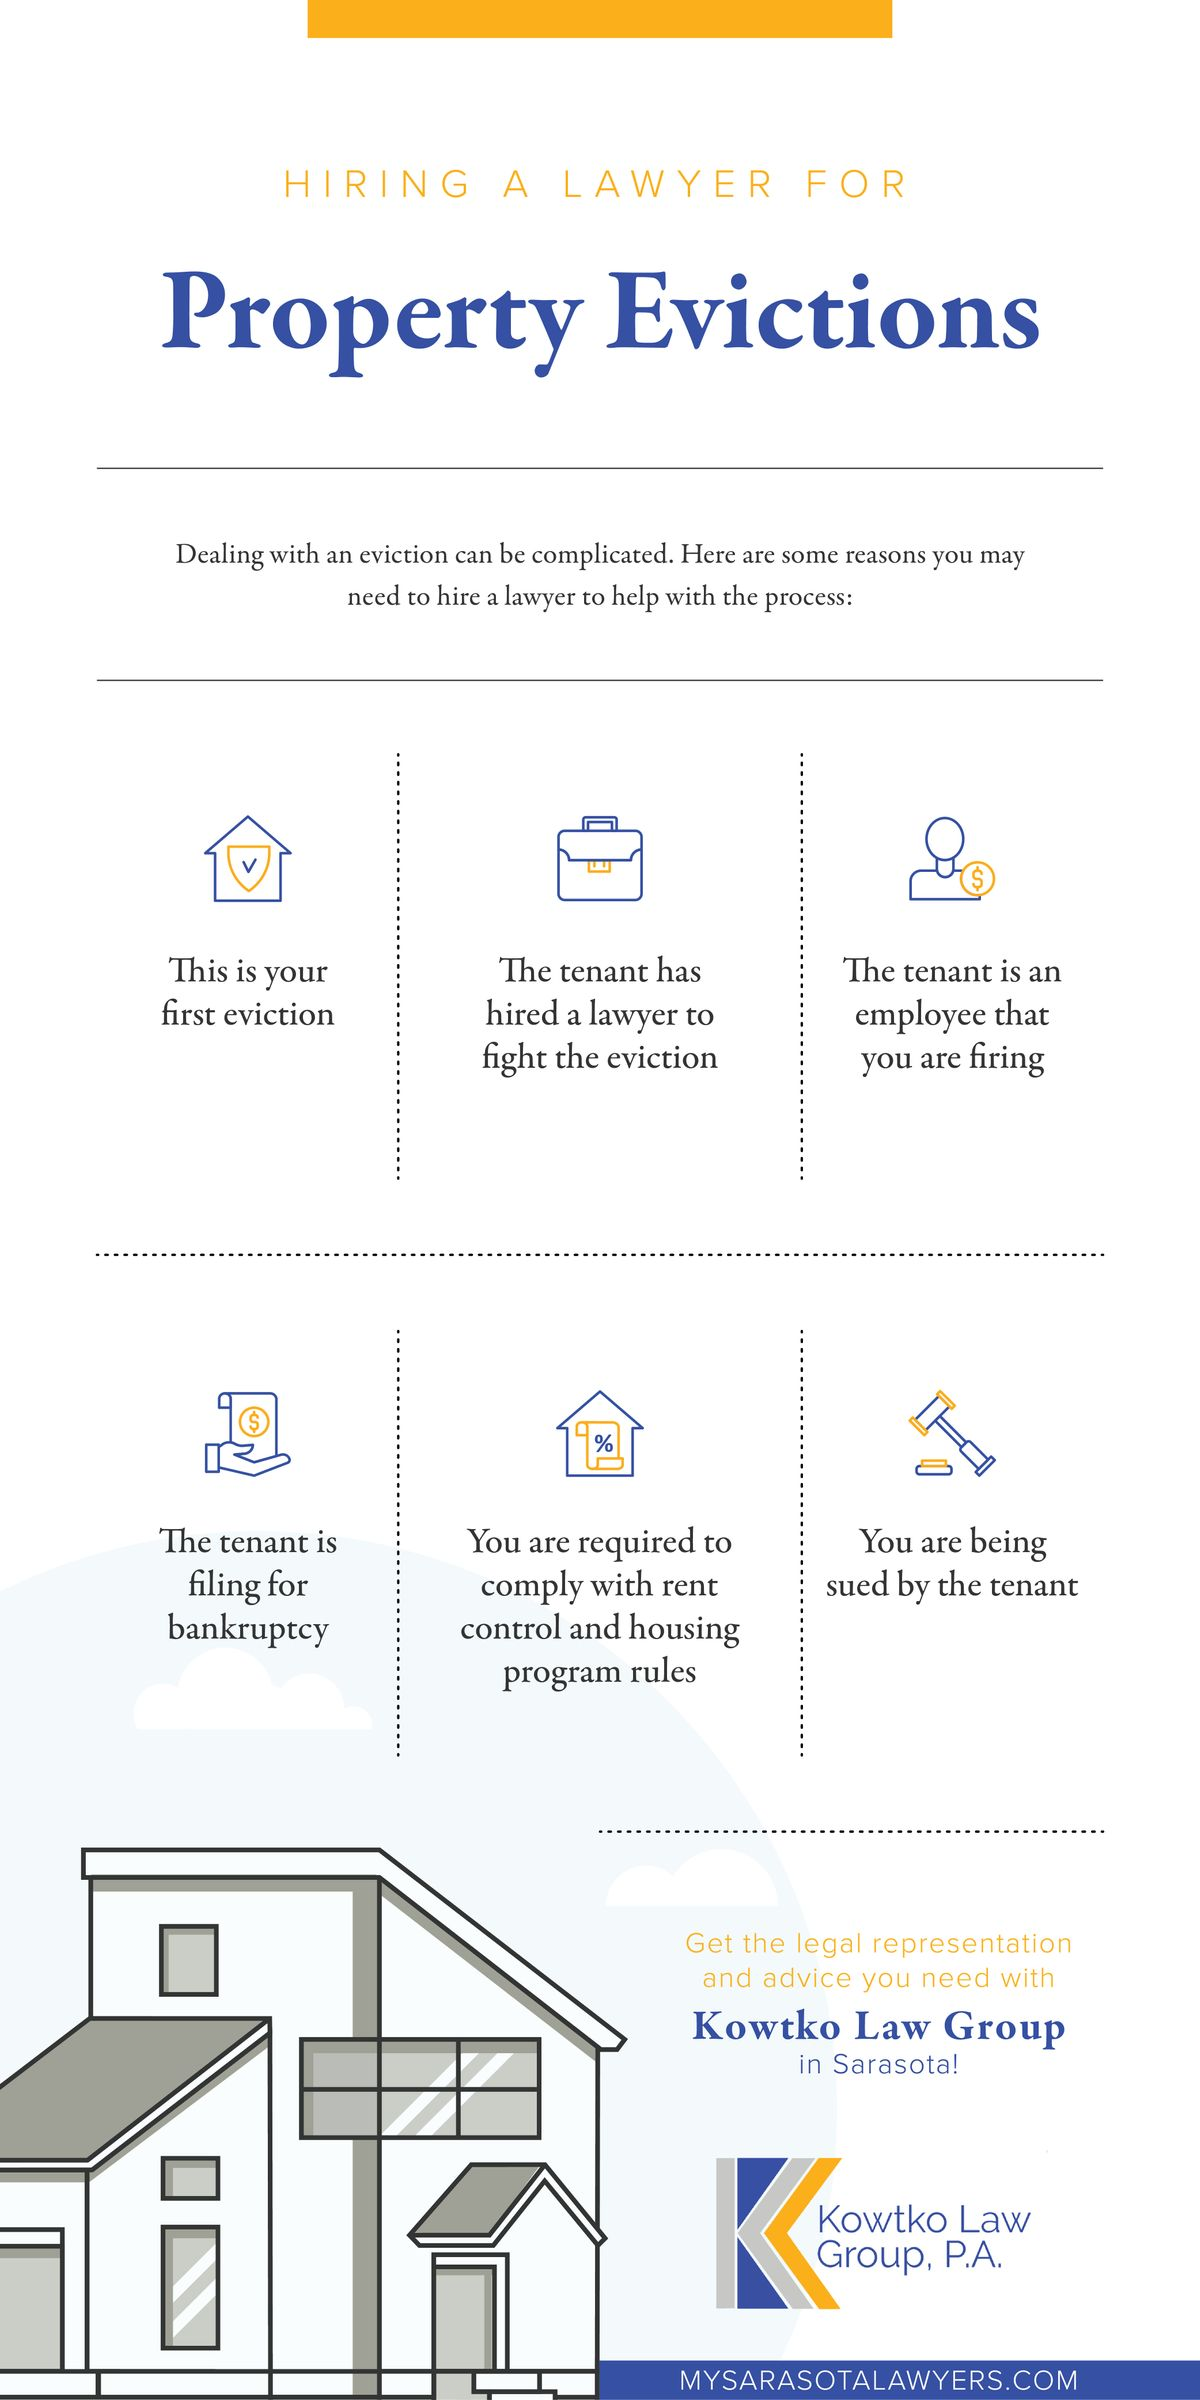 Hiring A Lawyer For Property Evictions_infographic-01.jpg